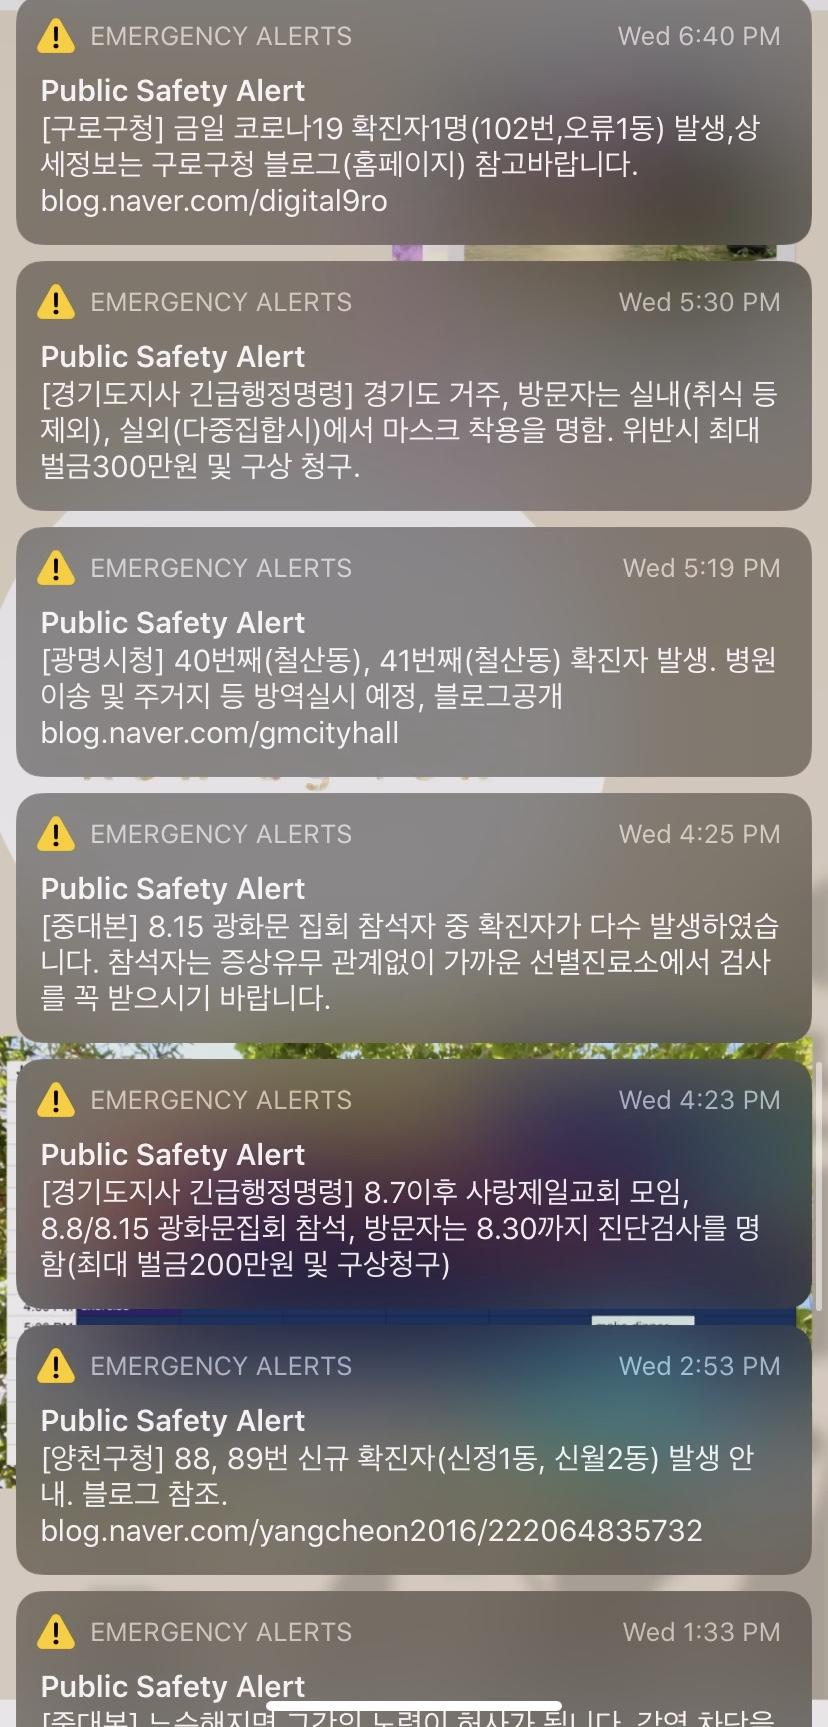 The Wireless Emergency Alerts system notifies me every time there is a new COVID-related update. I received seven COVID-19 alerts in the span of six hours Aug. 23, and 10 total that day.